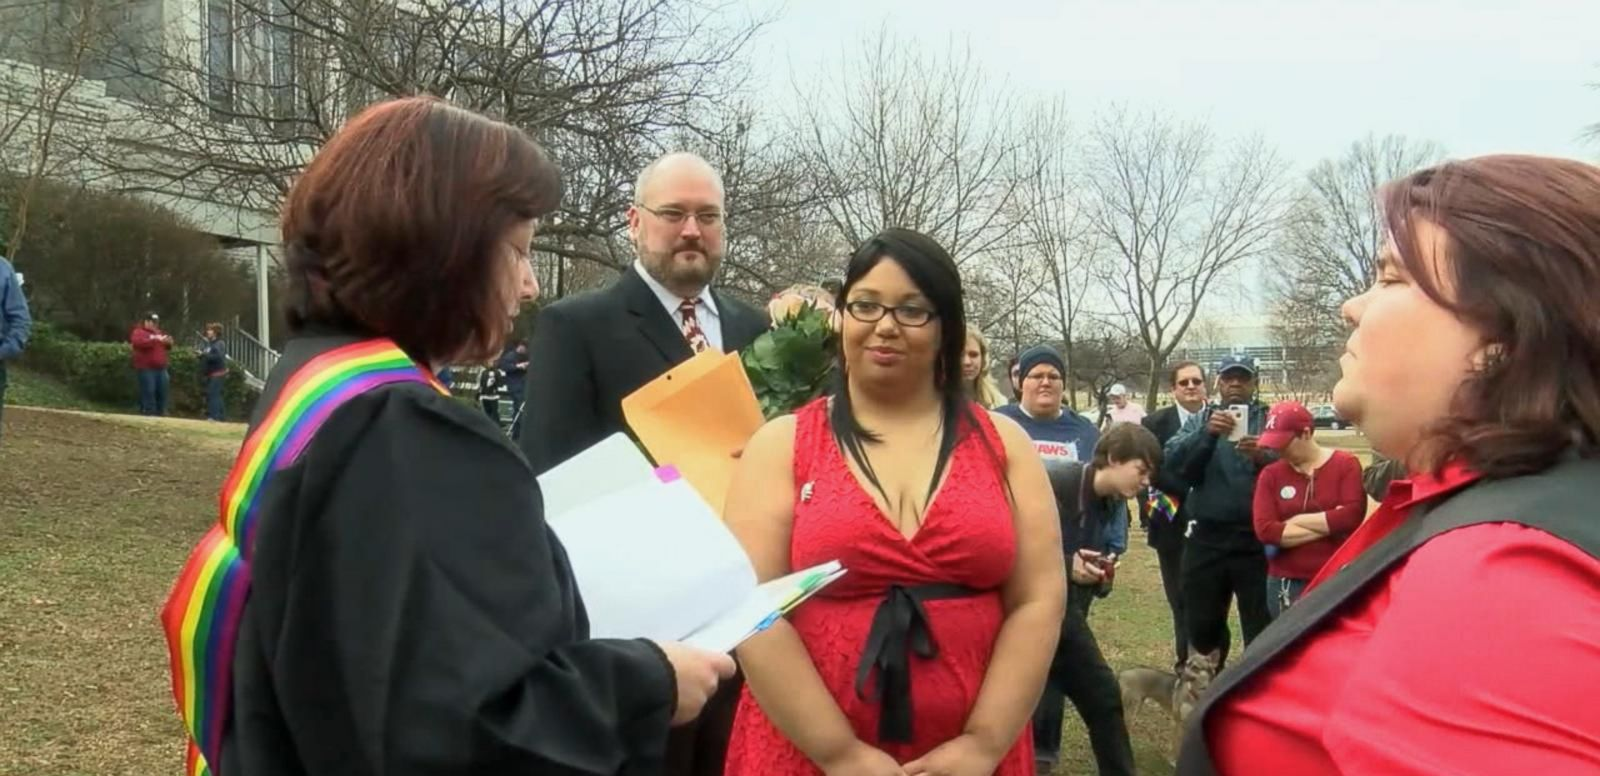 VIDEO: Alabama Officials Defy Federal Ruling Legalizing Same-Sex Marriage